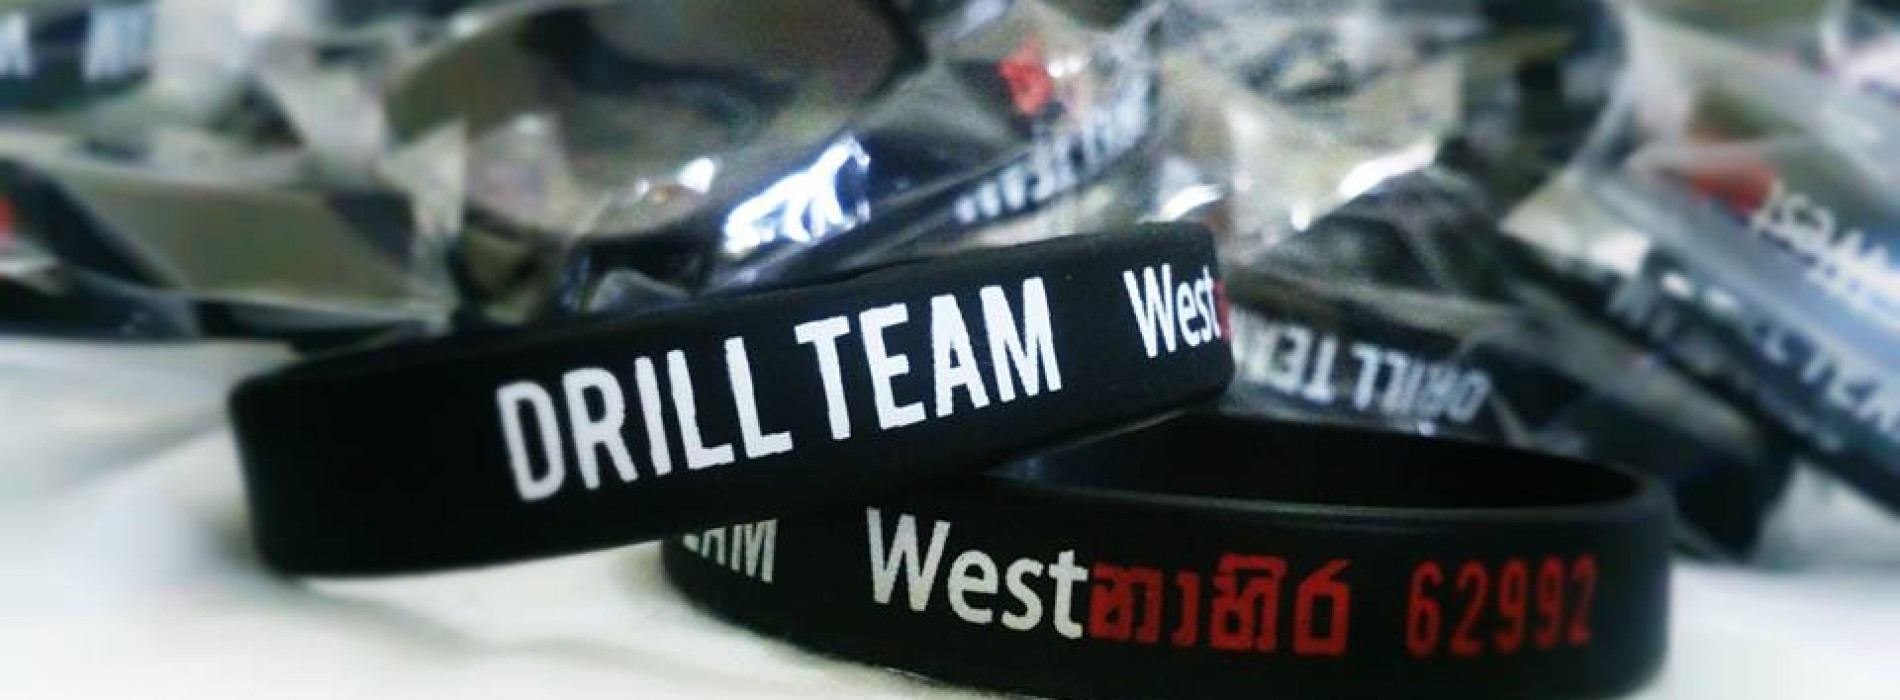 Drill Team Launches Wristband, Makes Fans Flood Their Inbox